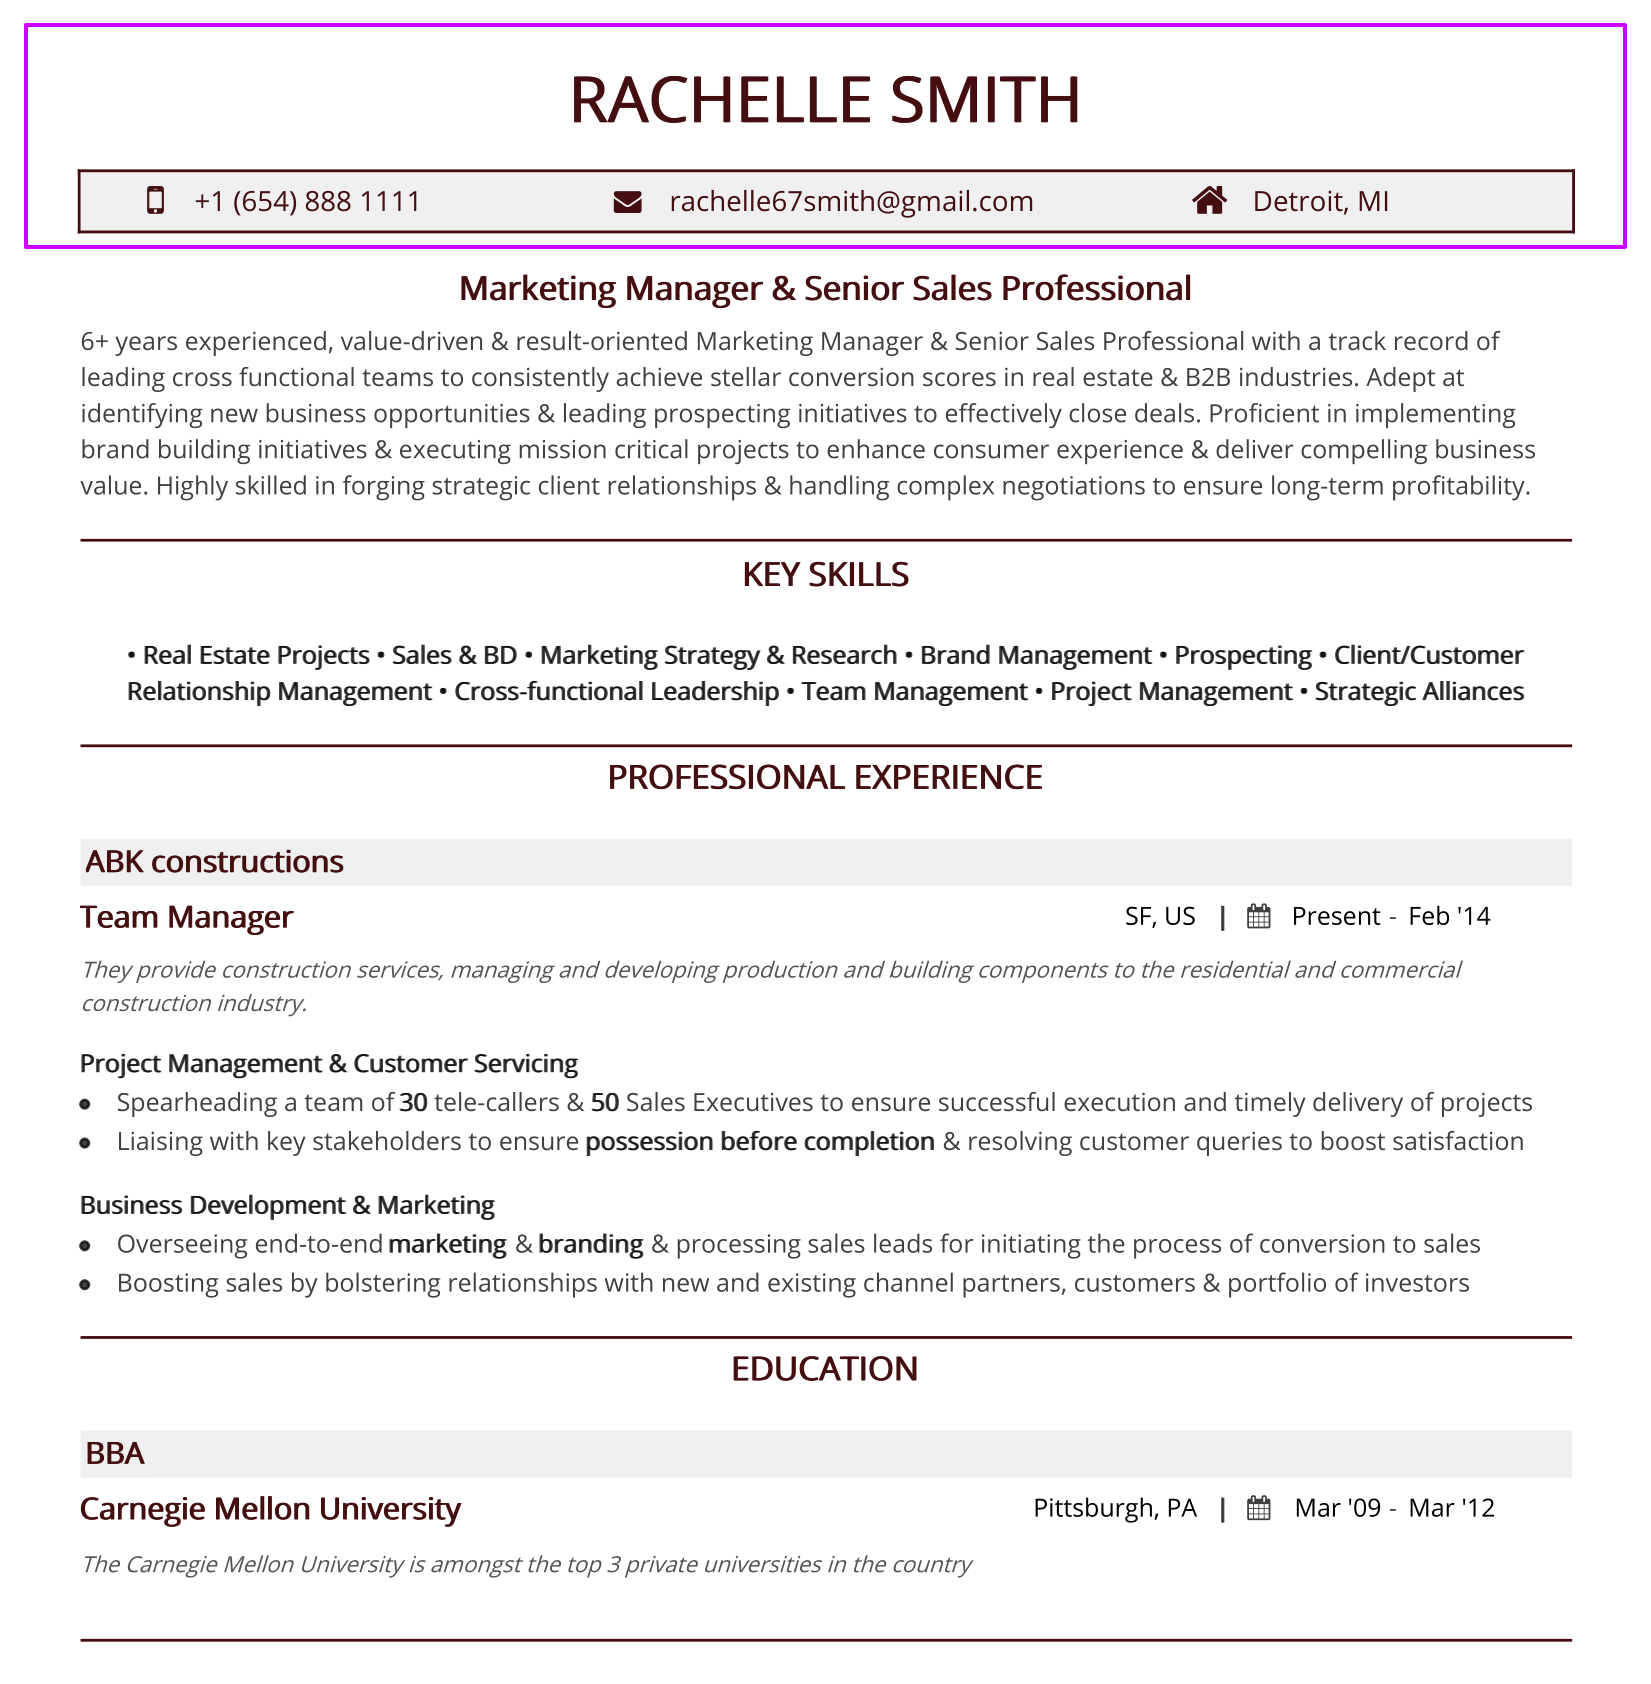 Two Page Resume Header Resume Header 2019 Guide To Contact Information In